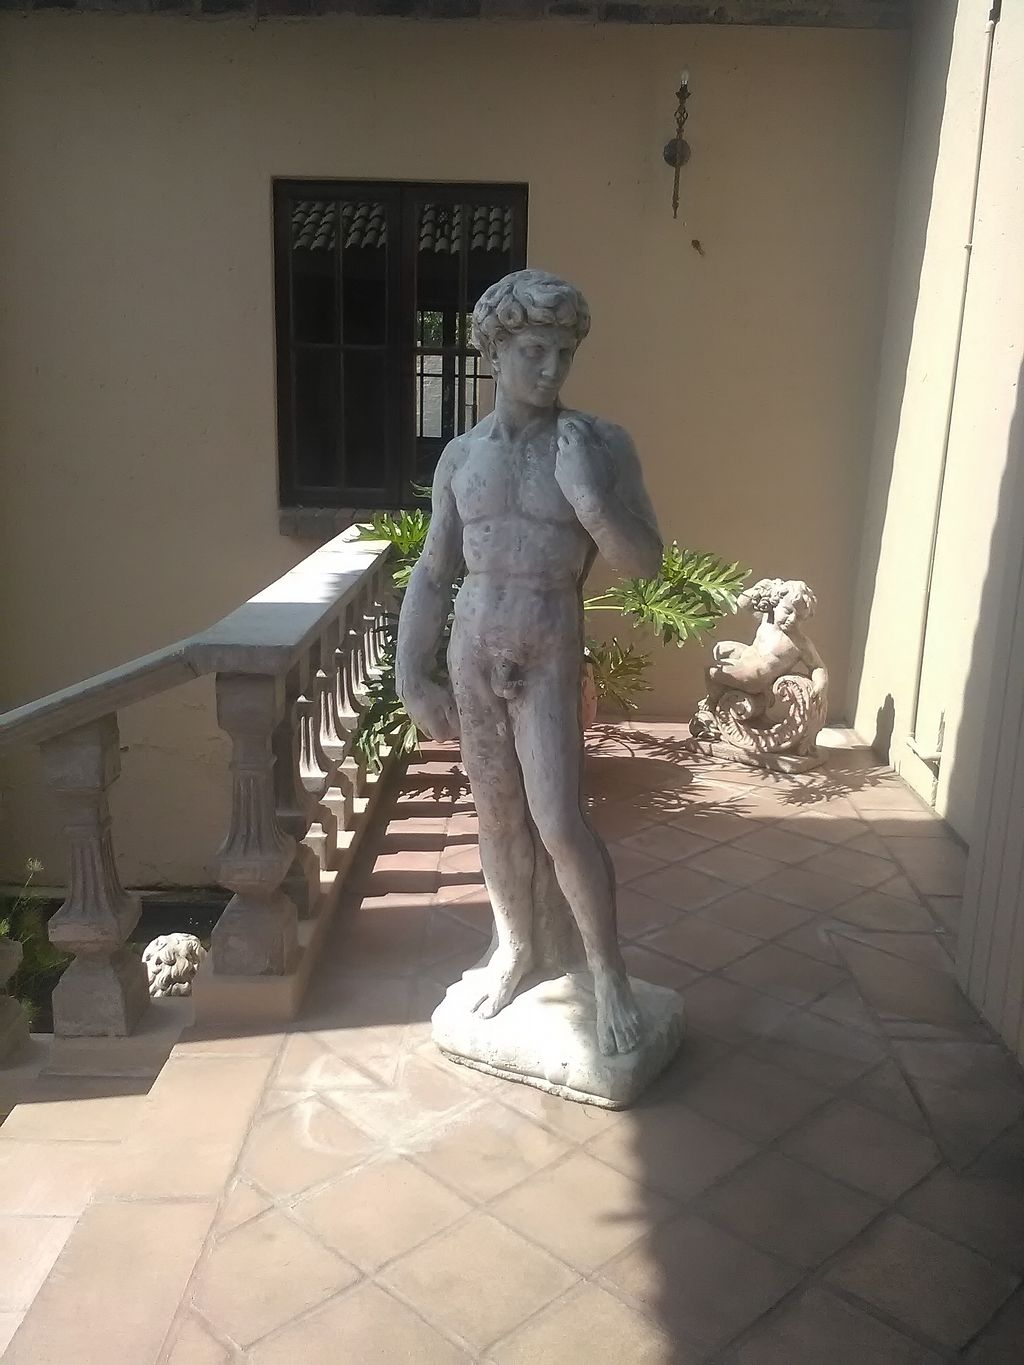 """Photo of Da Vicenzo  by <a href=""""/members/profile/Wolfmoon"""">Wolfmoon</a> <br/>Statue of Michelangelo decorates the place <br/> February 25, 2018  - <a href='/contact/abuse/image/91655/363566'>Report</a>"""